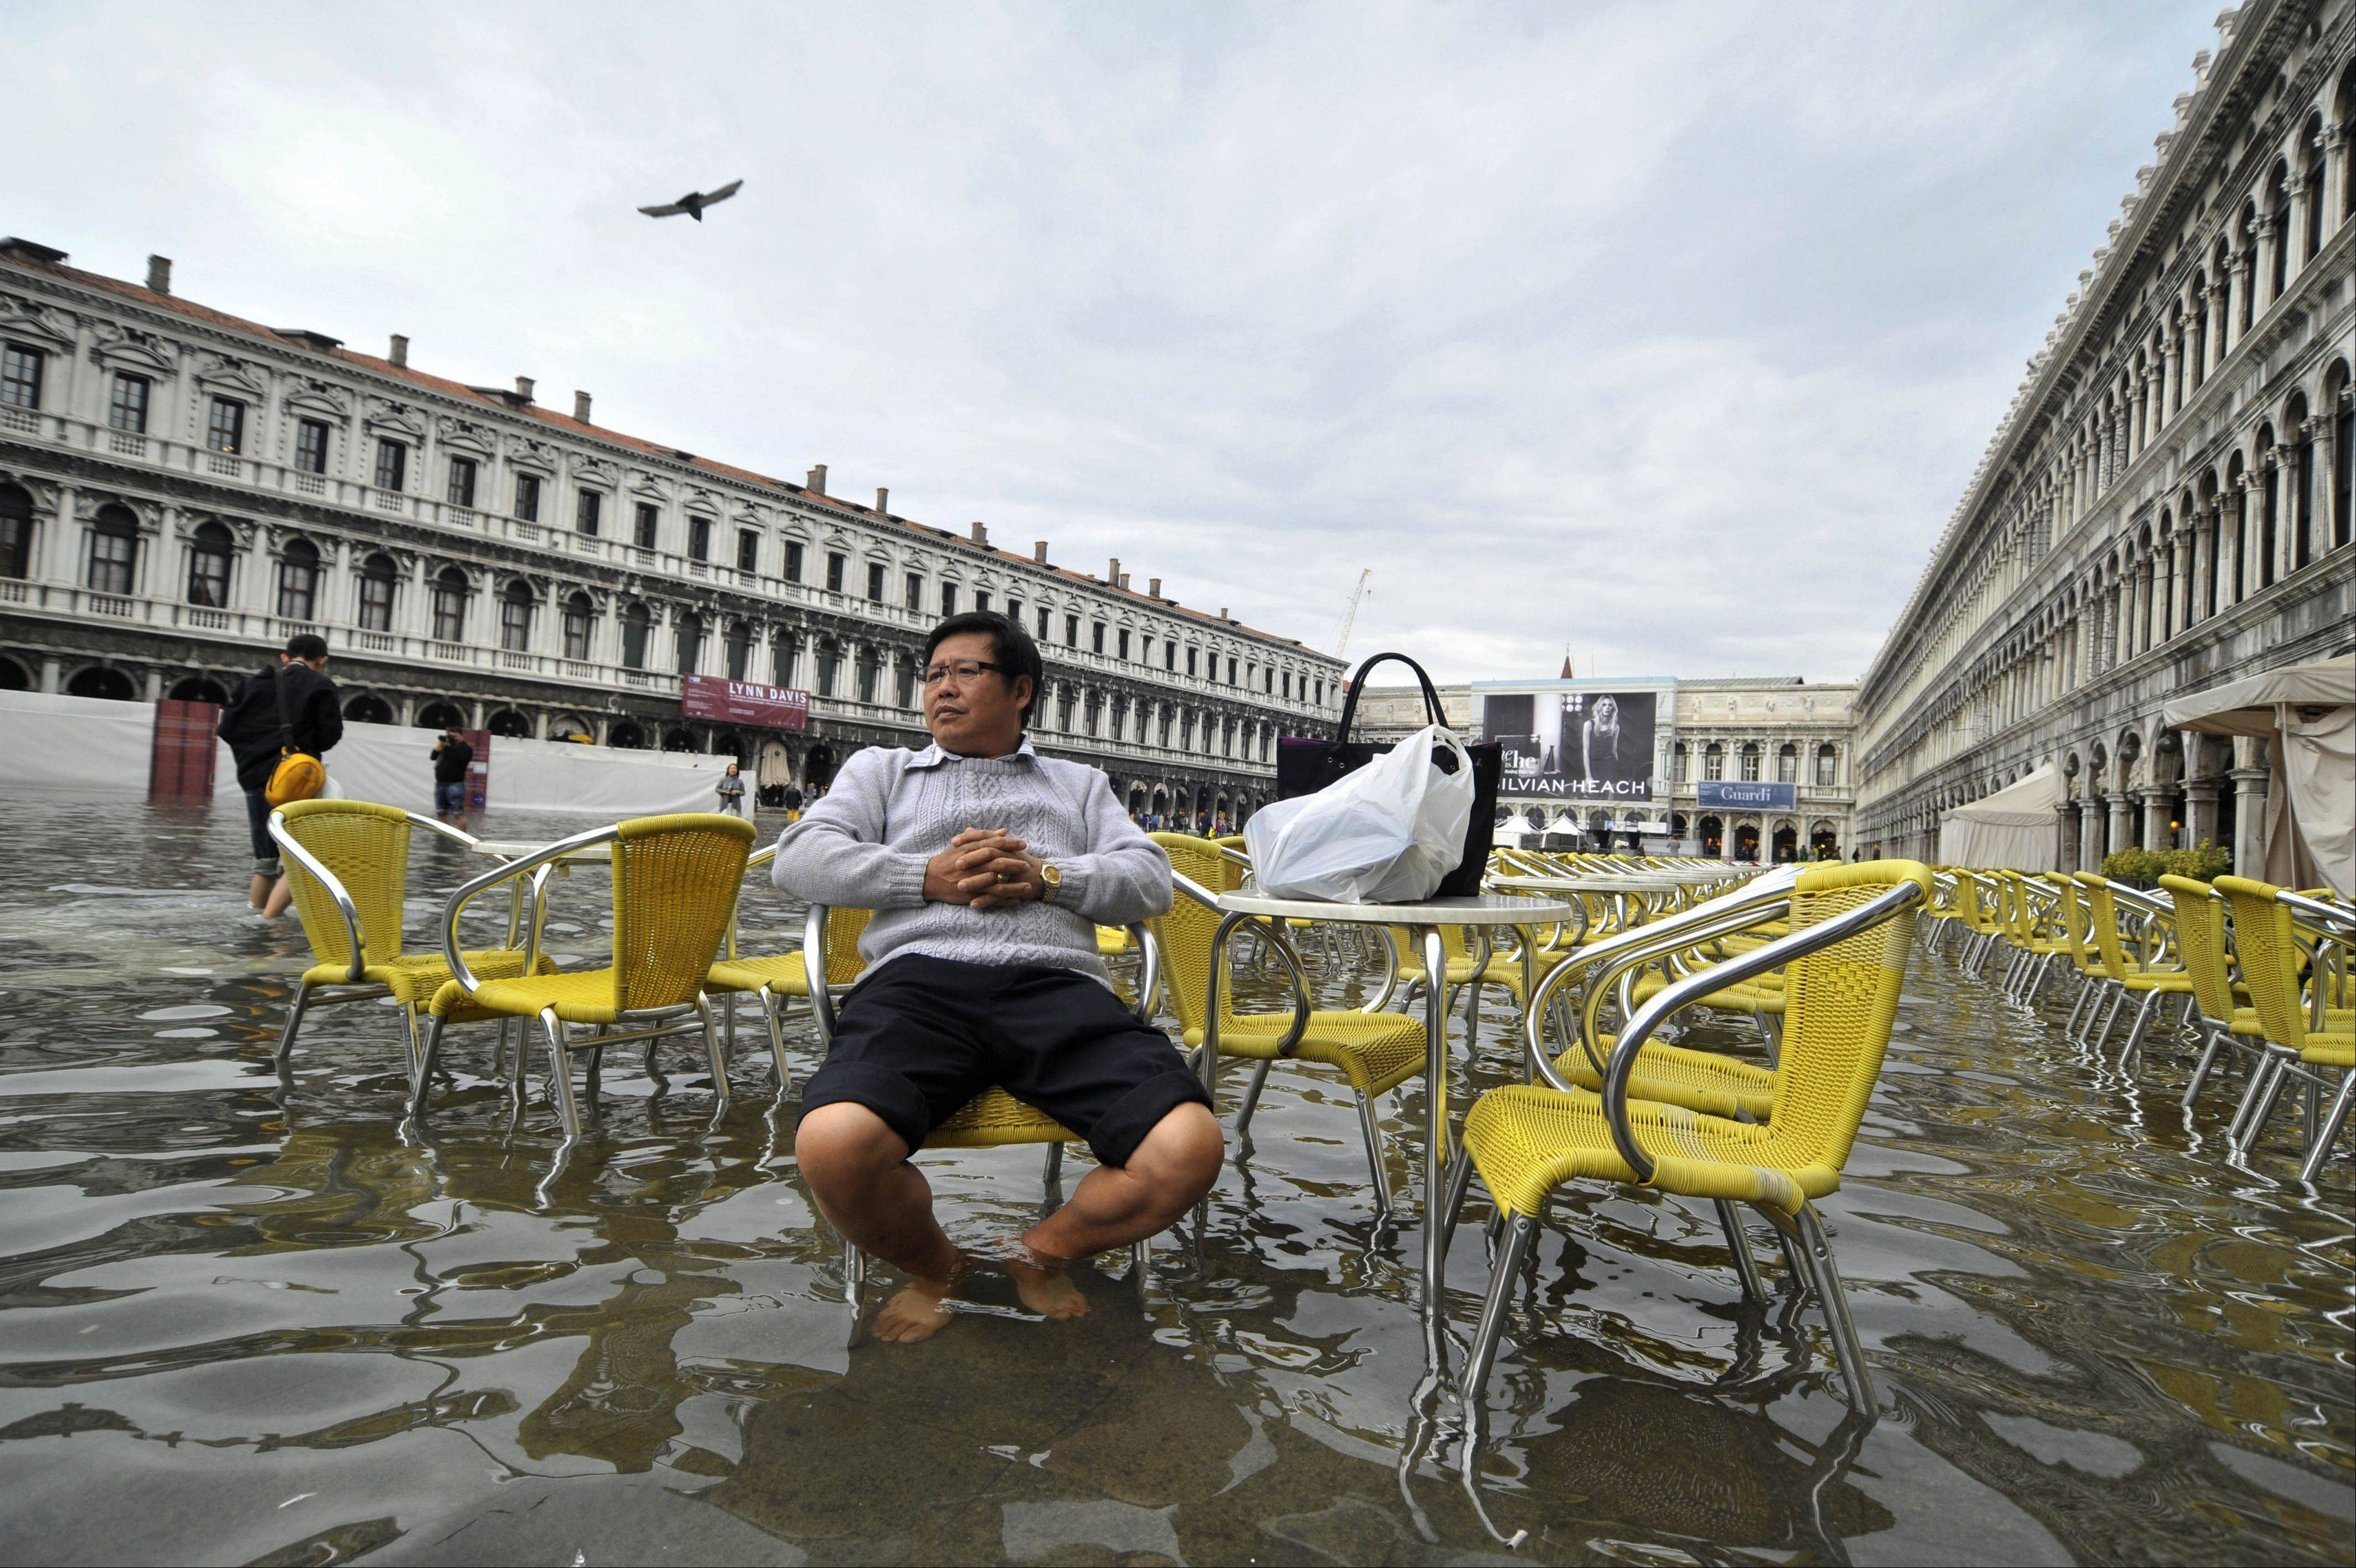 A tourist sits outside a cafe in a flooded St. Mark square as high tides reached three feet above sea level, partly flooding the city of Venice, Italy, Oct. 15, 2012. The Lagoon City, a system of islands built into a river delta, is extremely vulnerable to rising sea levels. At the same time it is experiencing a lowering of the sea floor. The constant flooding puts the city's considerable architectural treasures at risk.